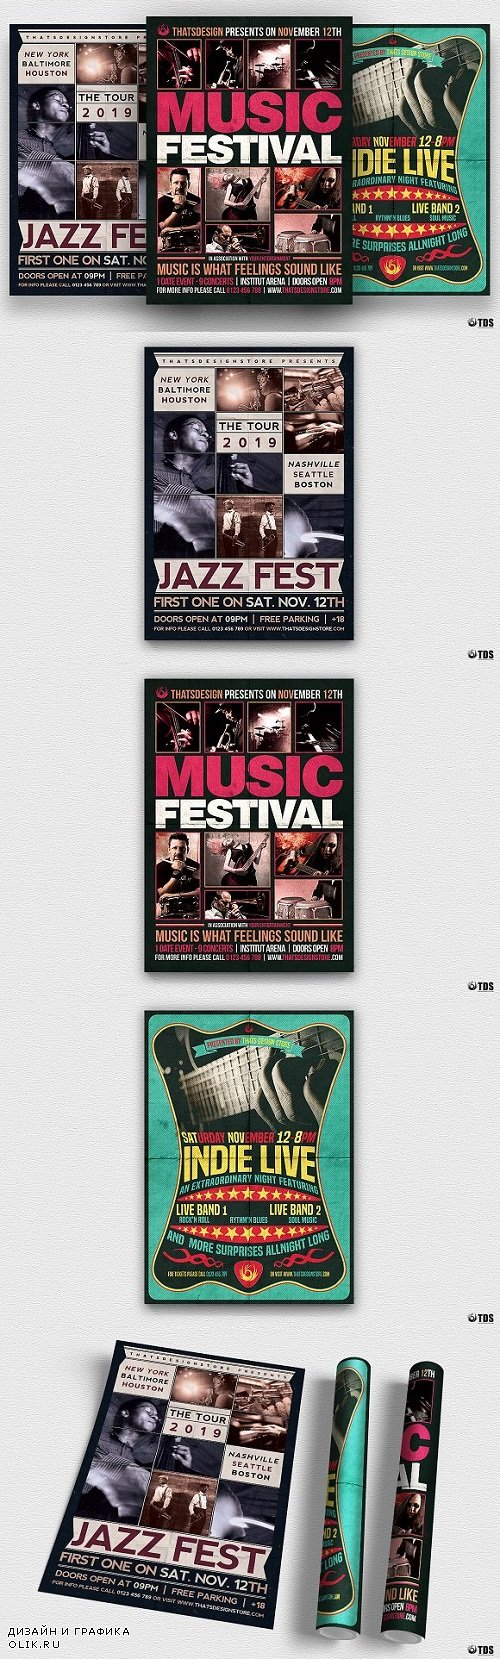 Concert Flyer Bundle V1 2043391